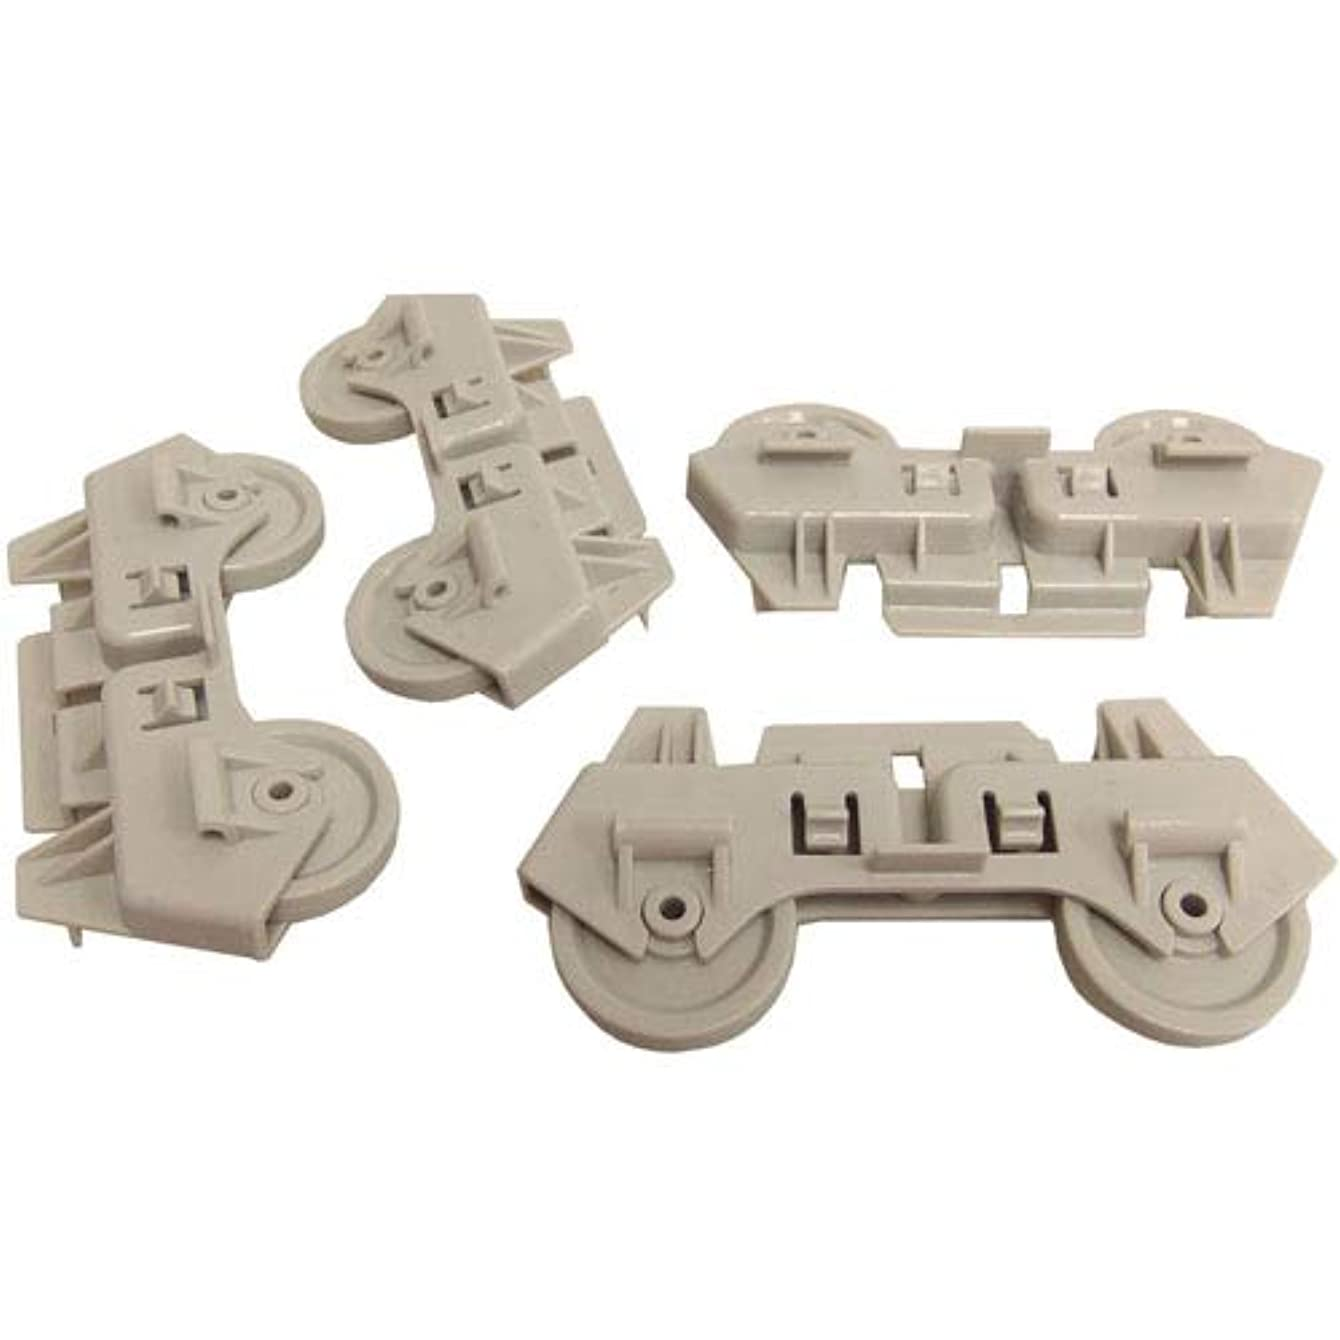 AH358588 - Inglis Aftermarket Replacement Dishwasher Rack Rollers